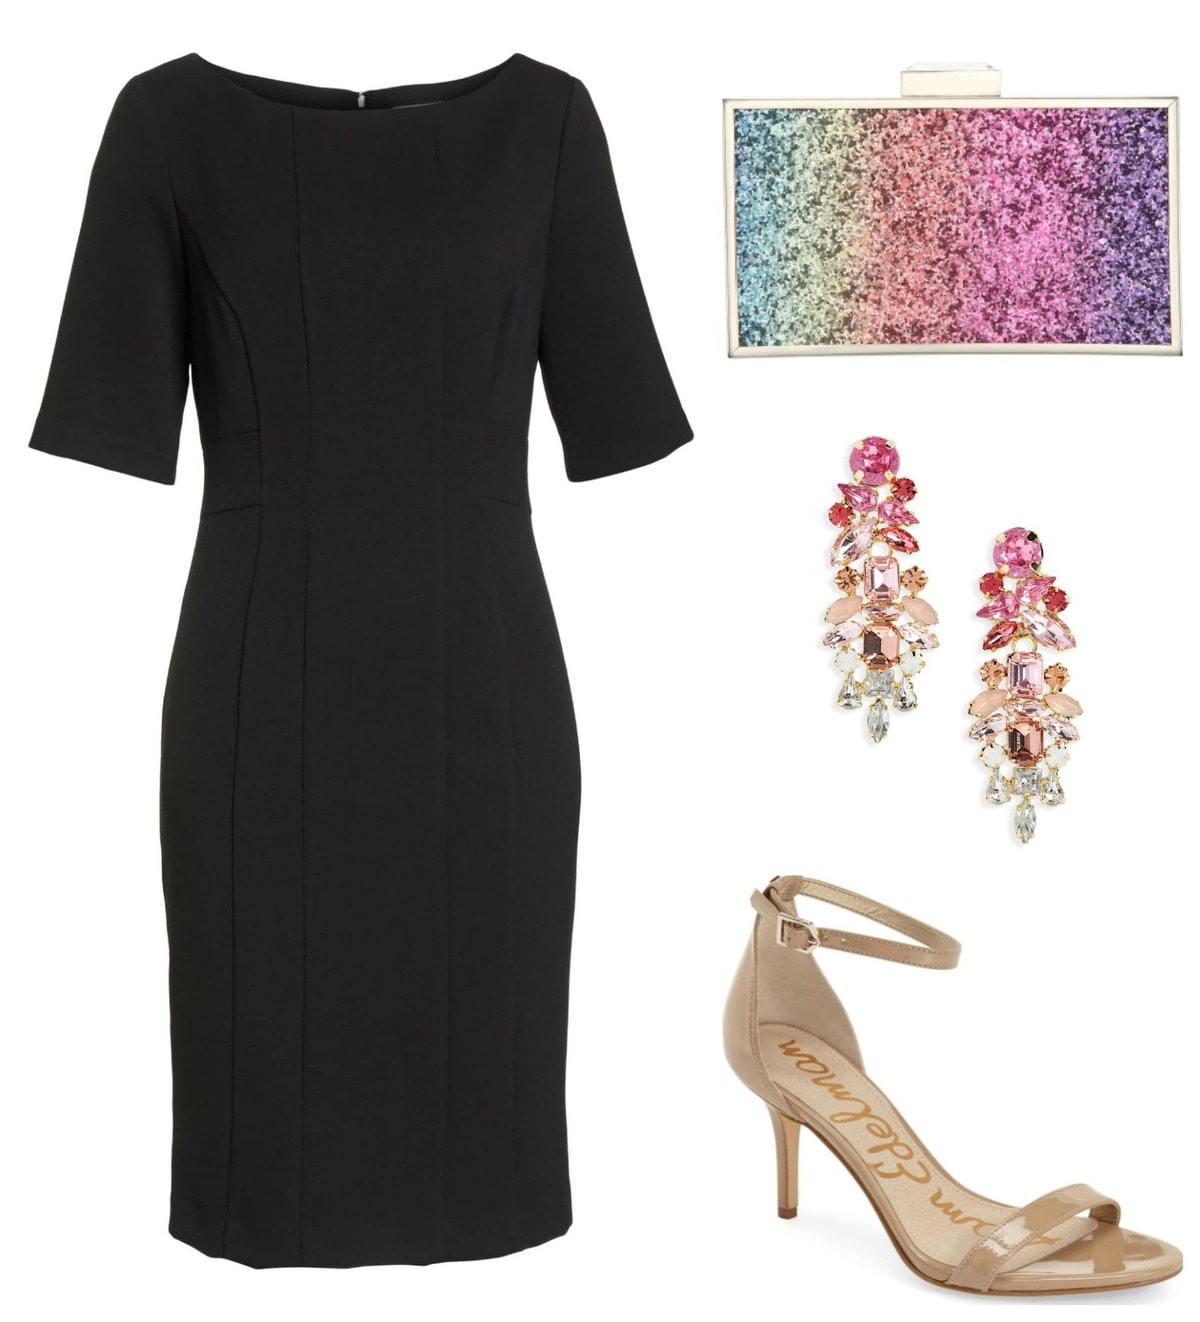 Lighten up a not-so little black dress with nude heels and colorful accessories.